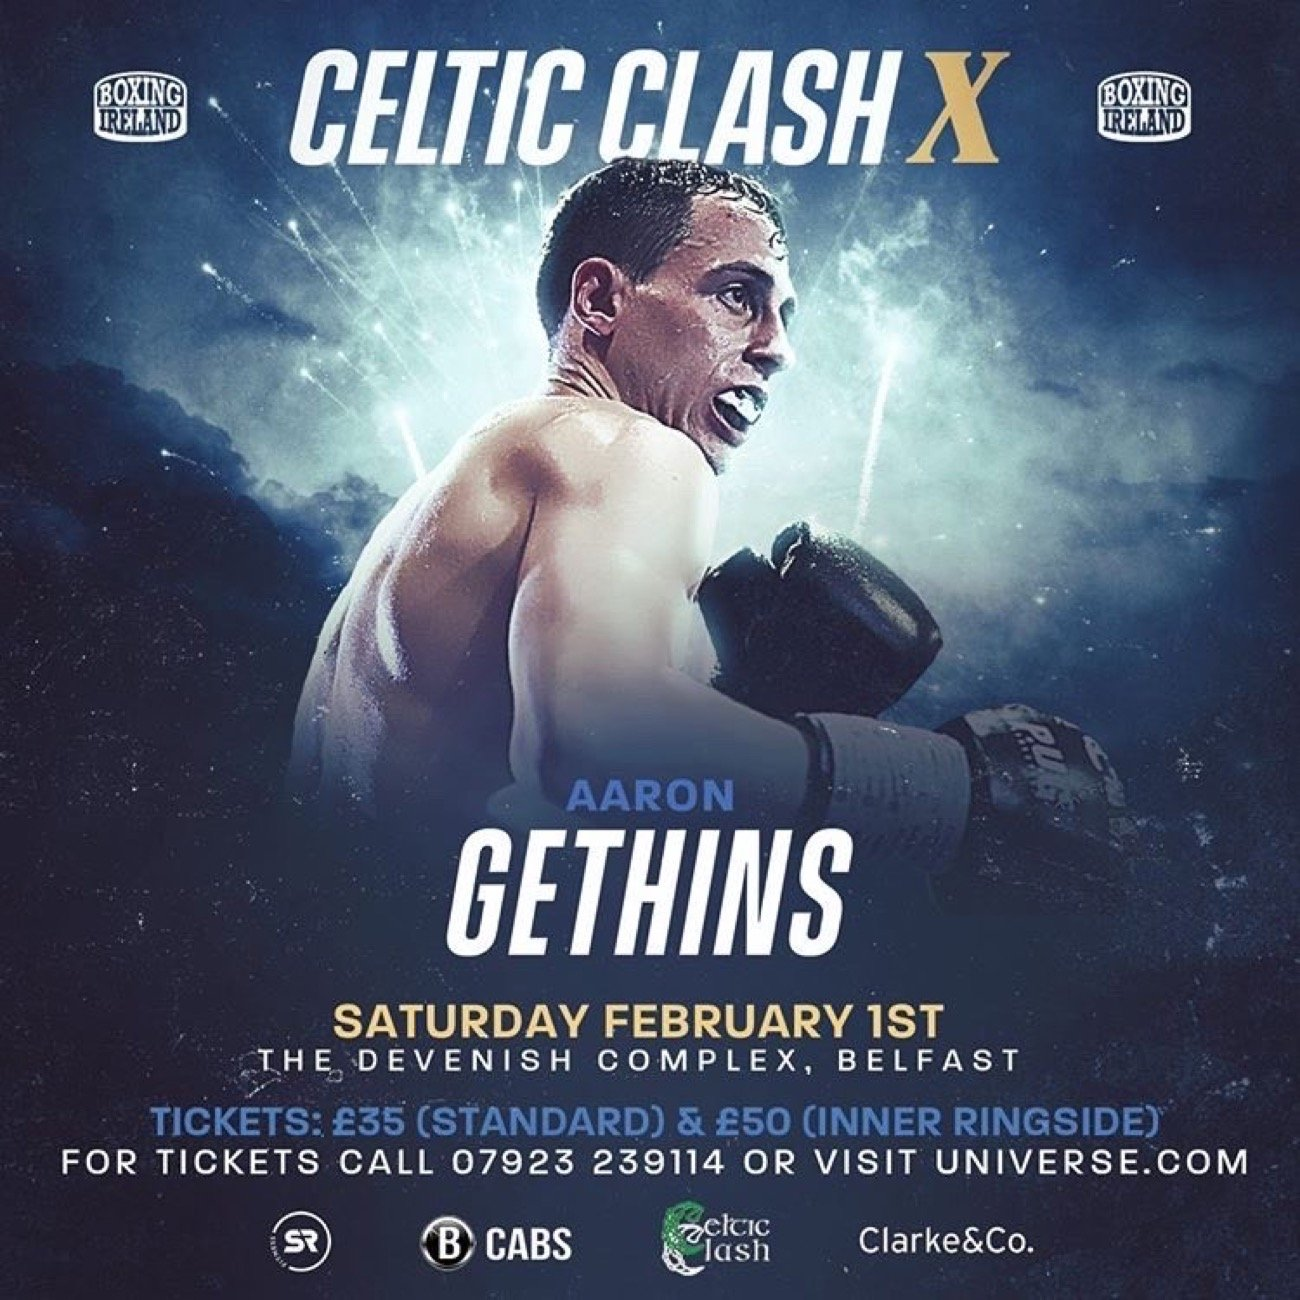 Aaron Gethins - Sligo starlet Aaron Gethins will return to the ring next month and it could set up a big homecoming.